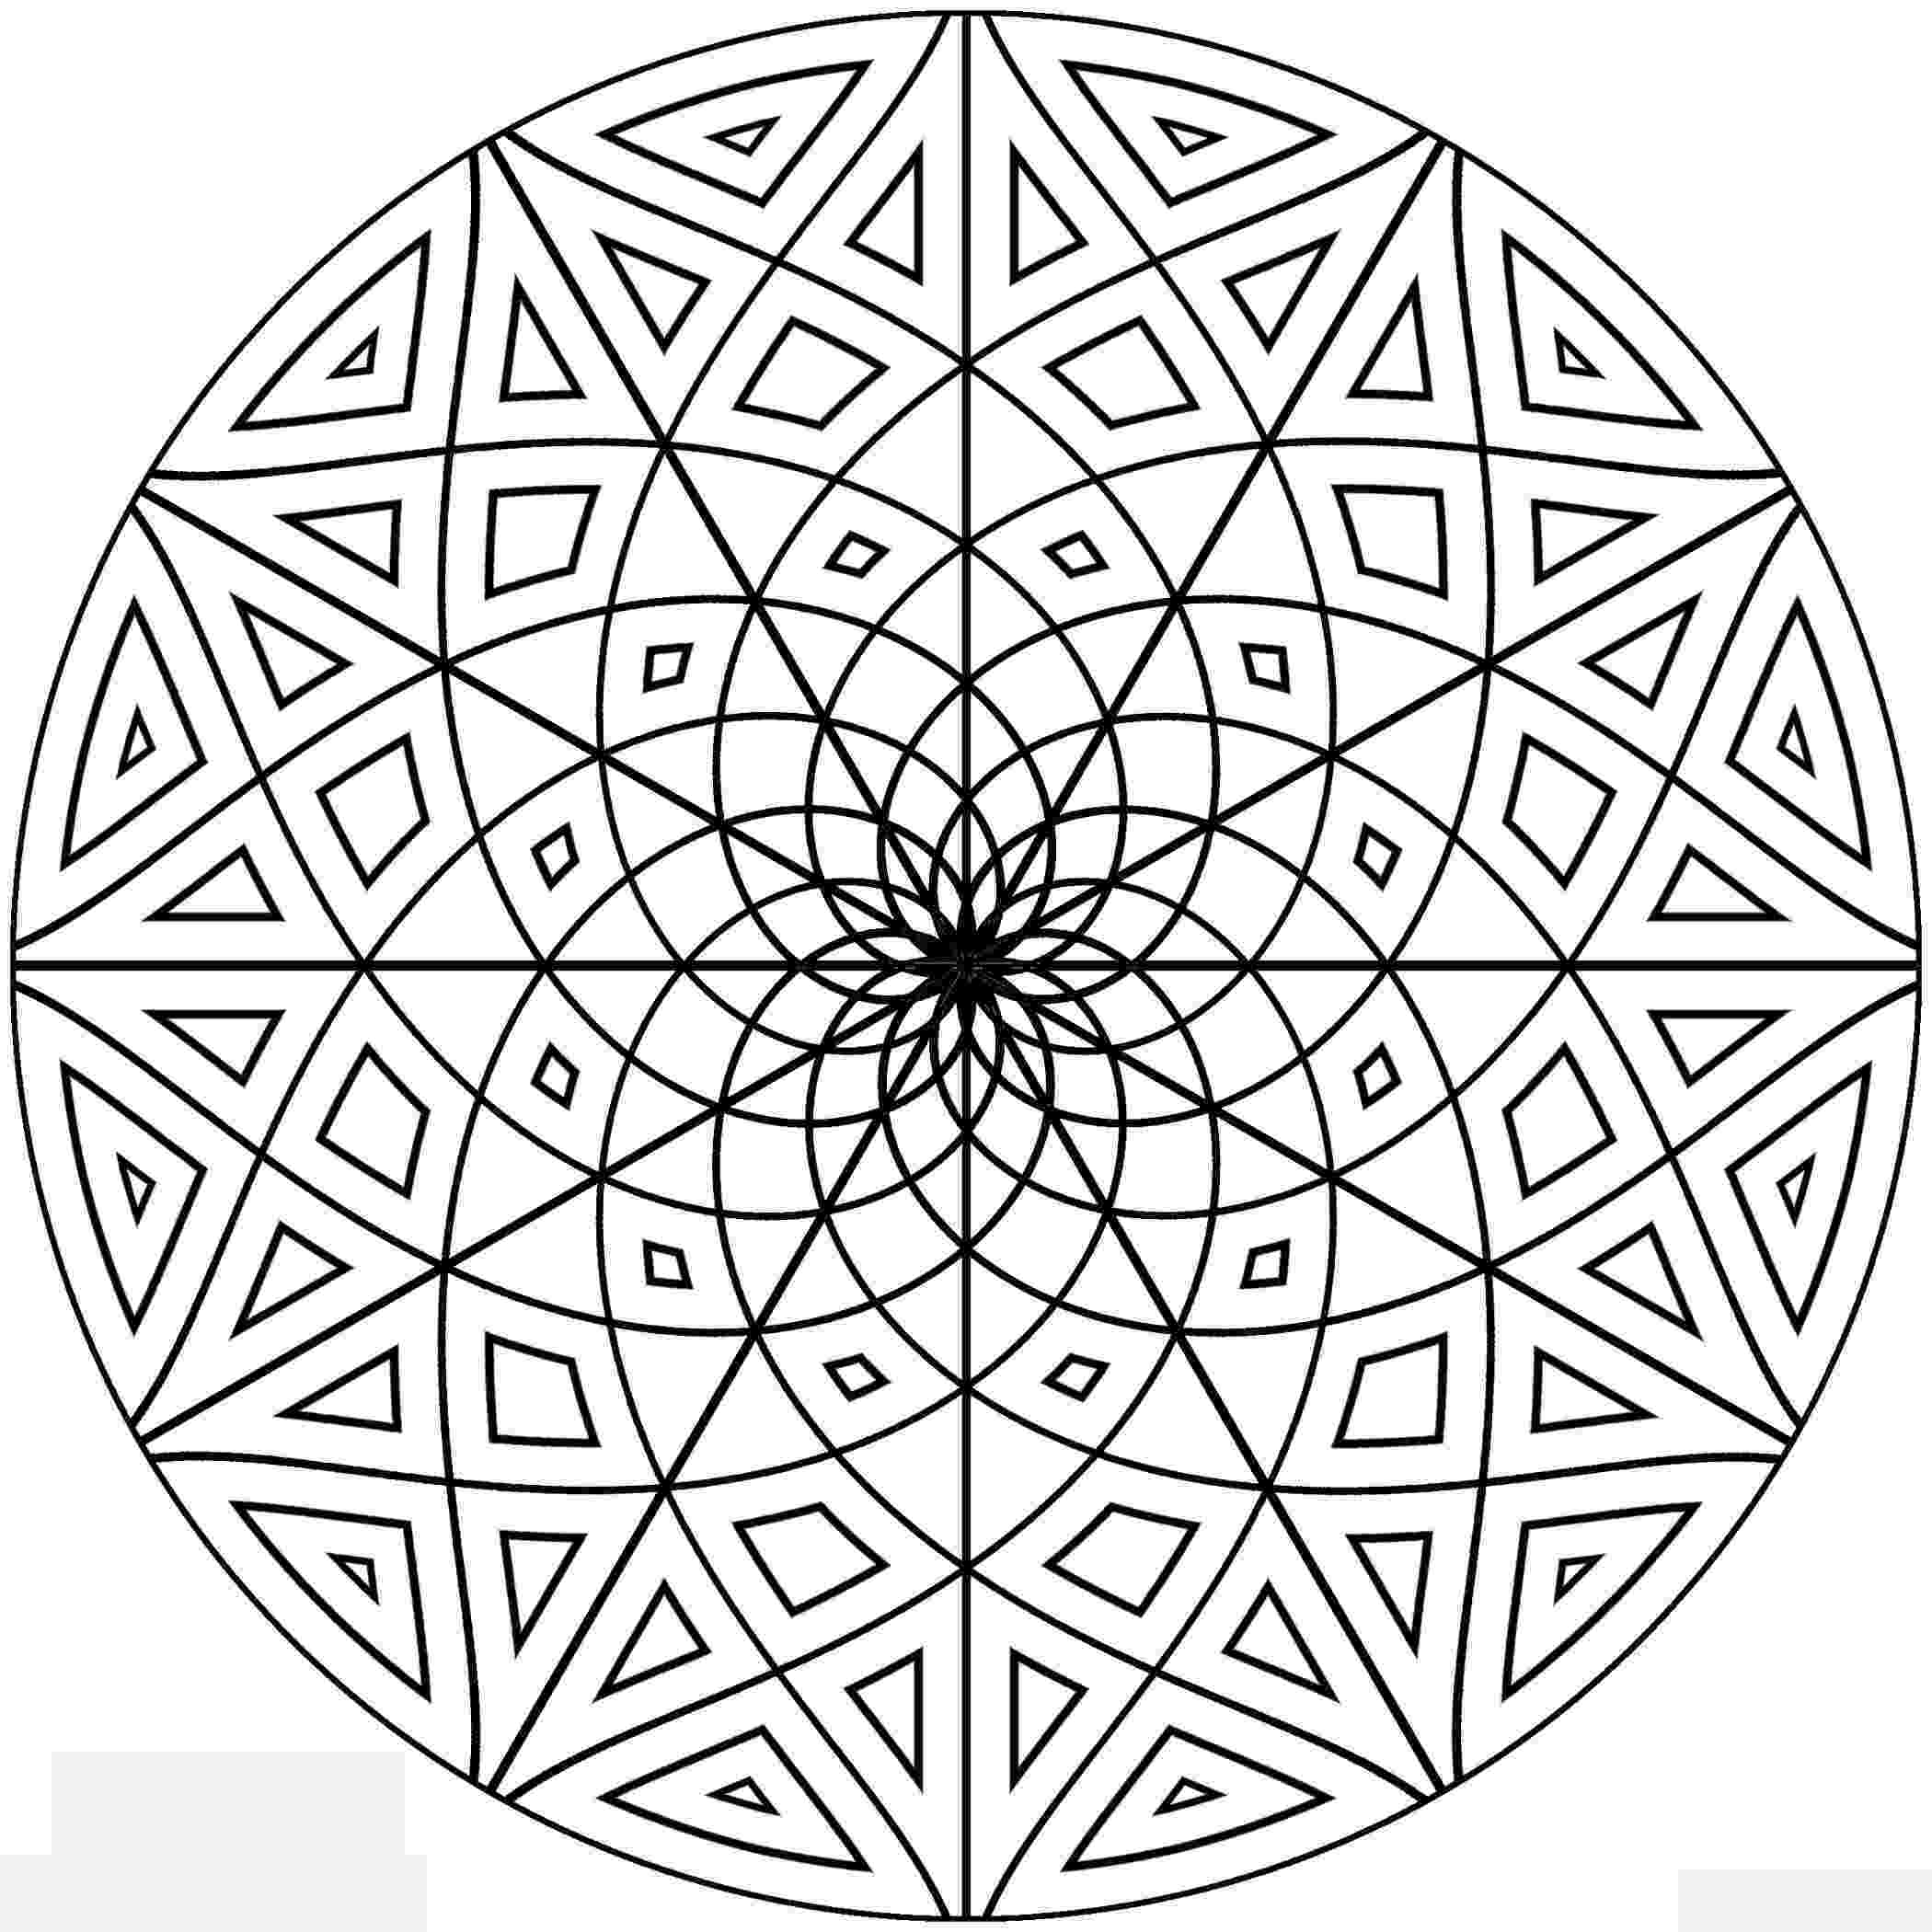 colouring patterns colouring designs thelinoprinter colouring patterns